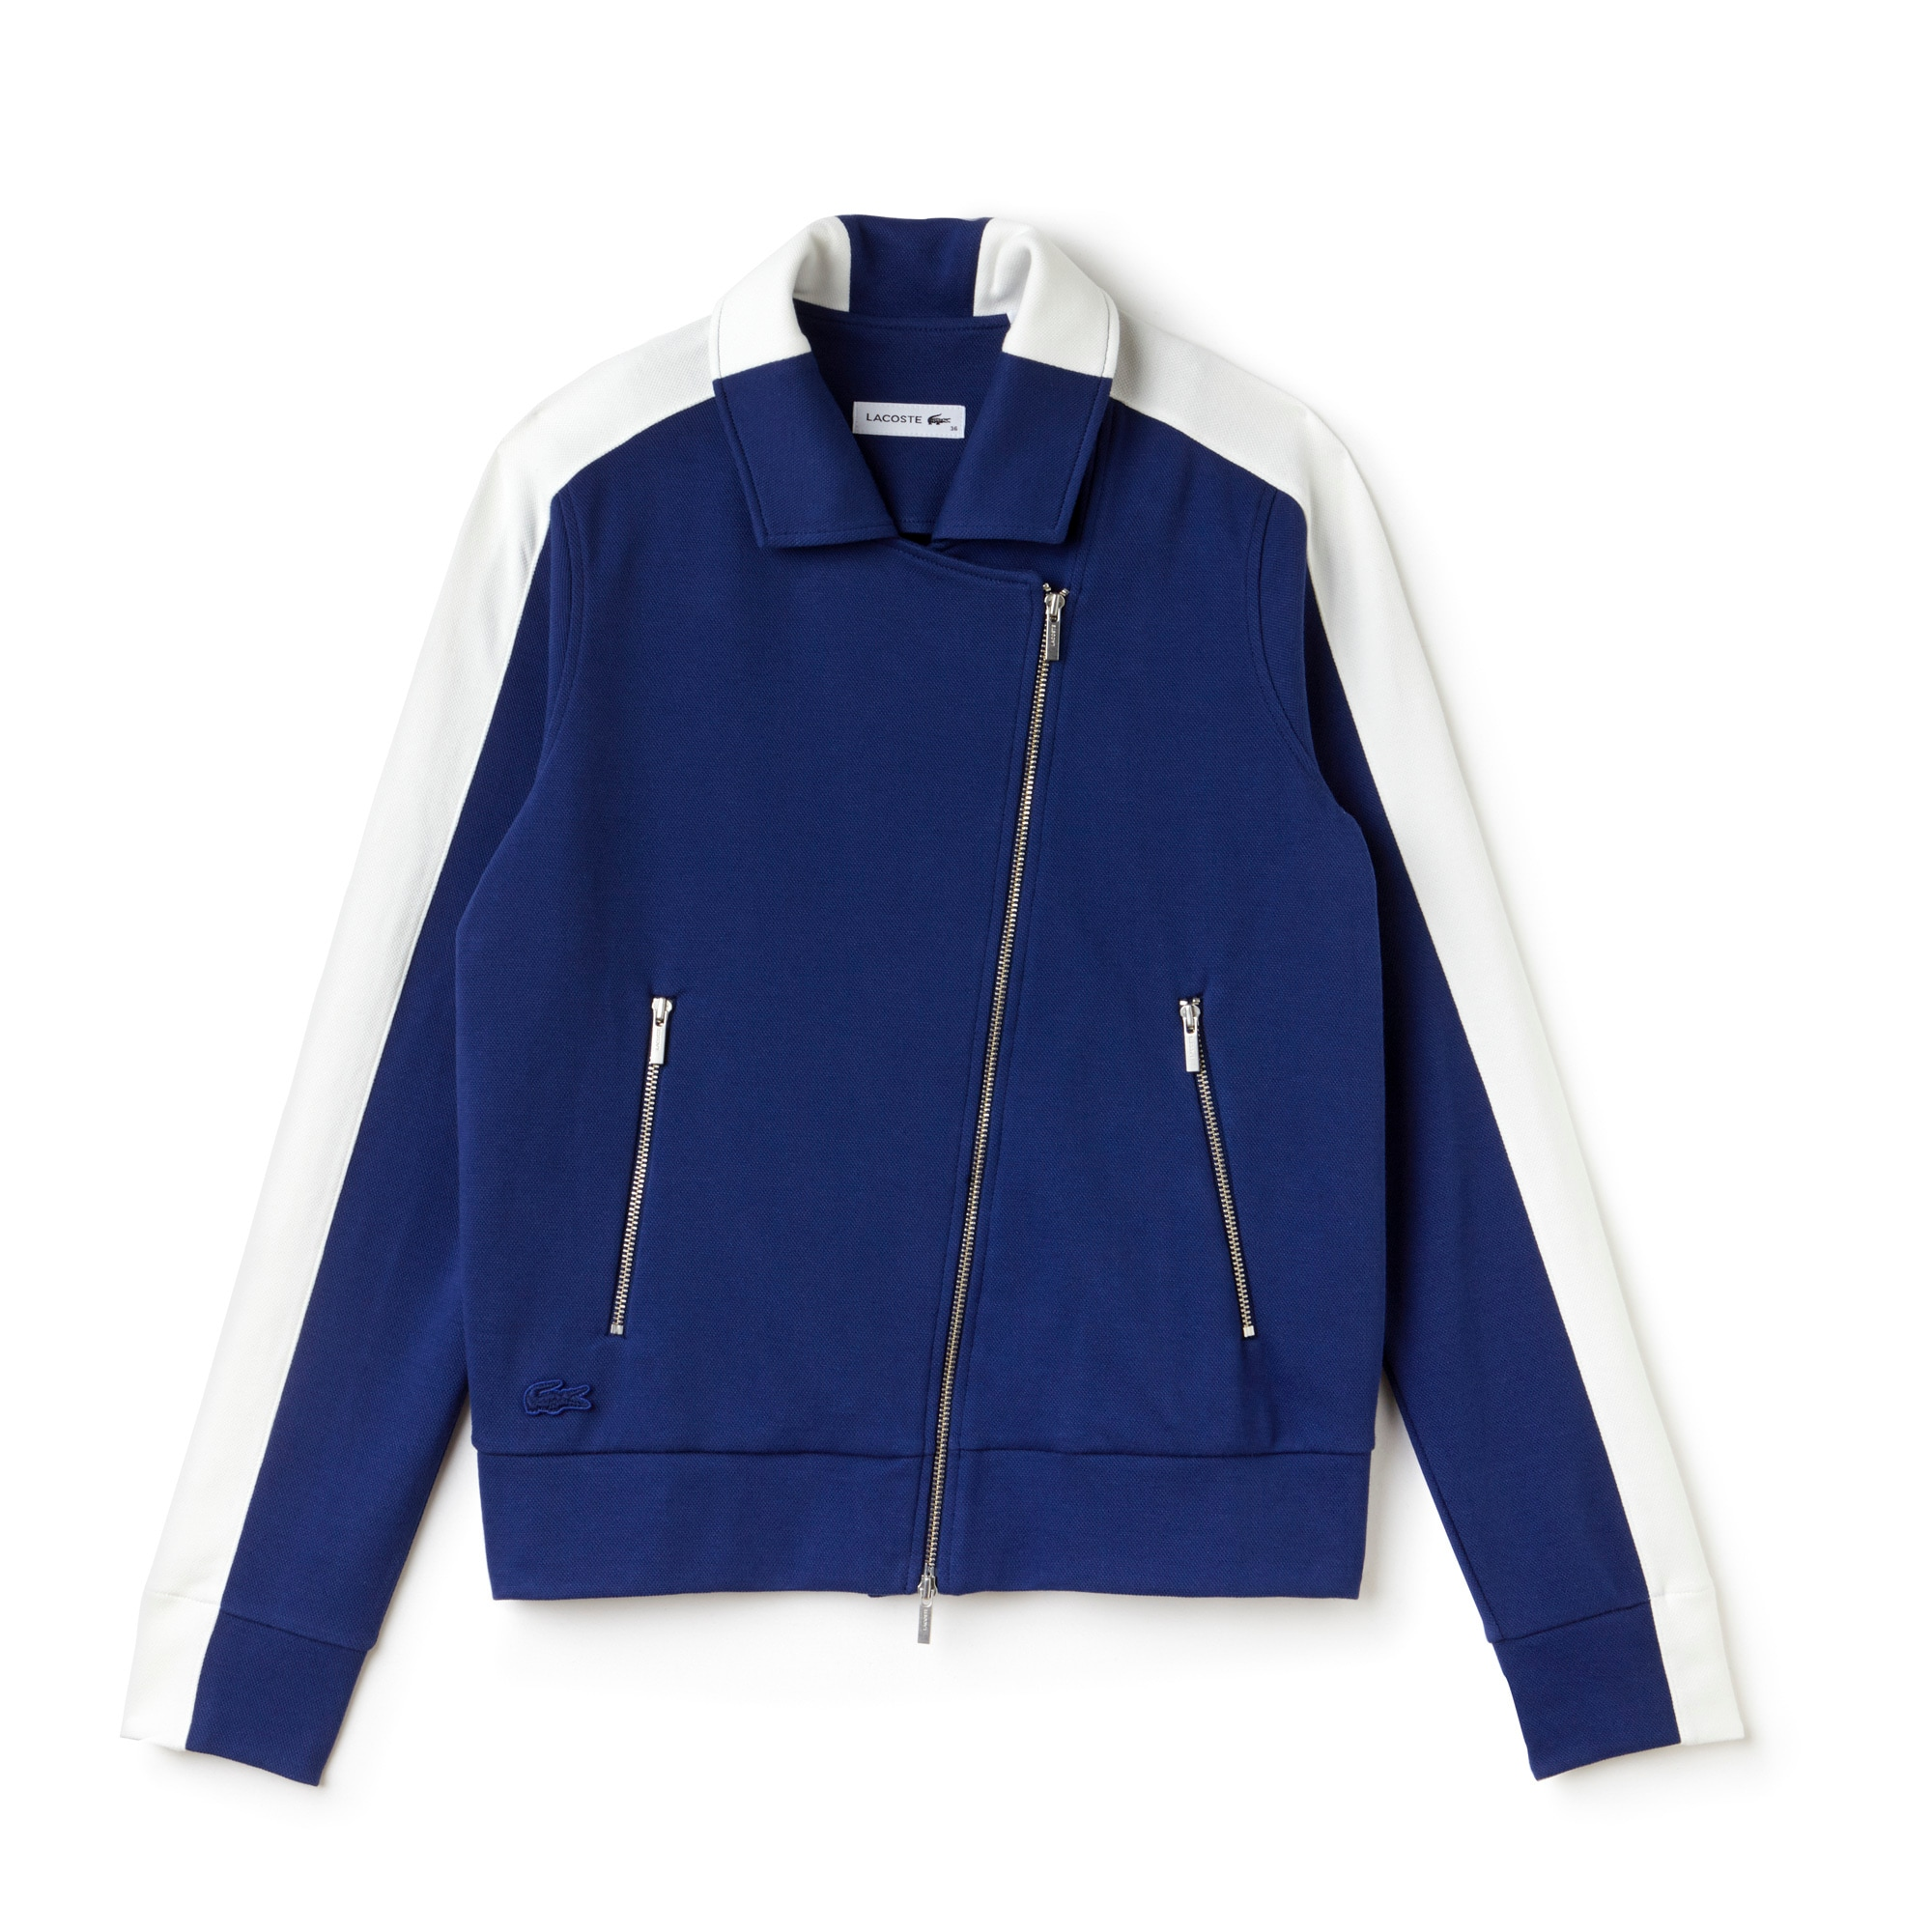 Women's Contrast Band Interlock Piqué Jacket